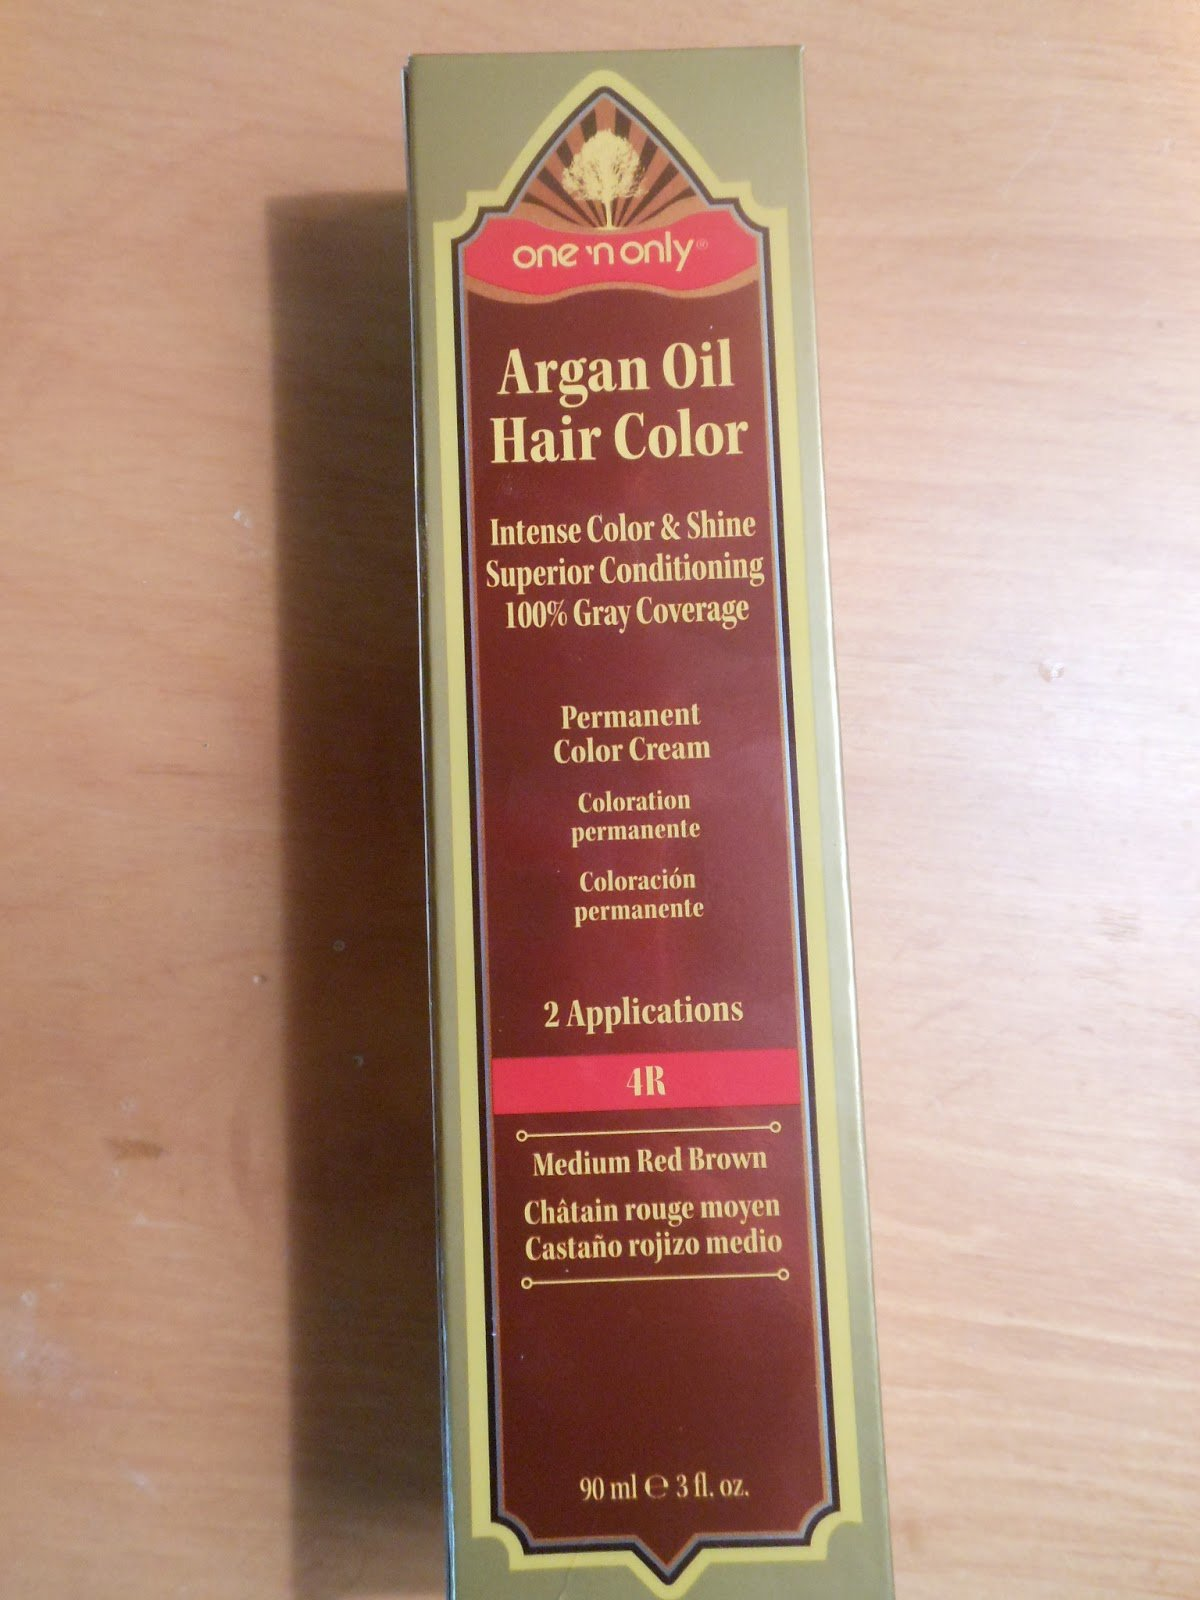 The Best Hair Experiment One N Only Argan Oil Hair Color 4R Pictures